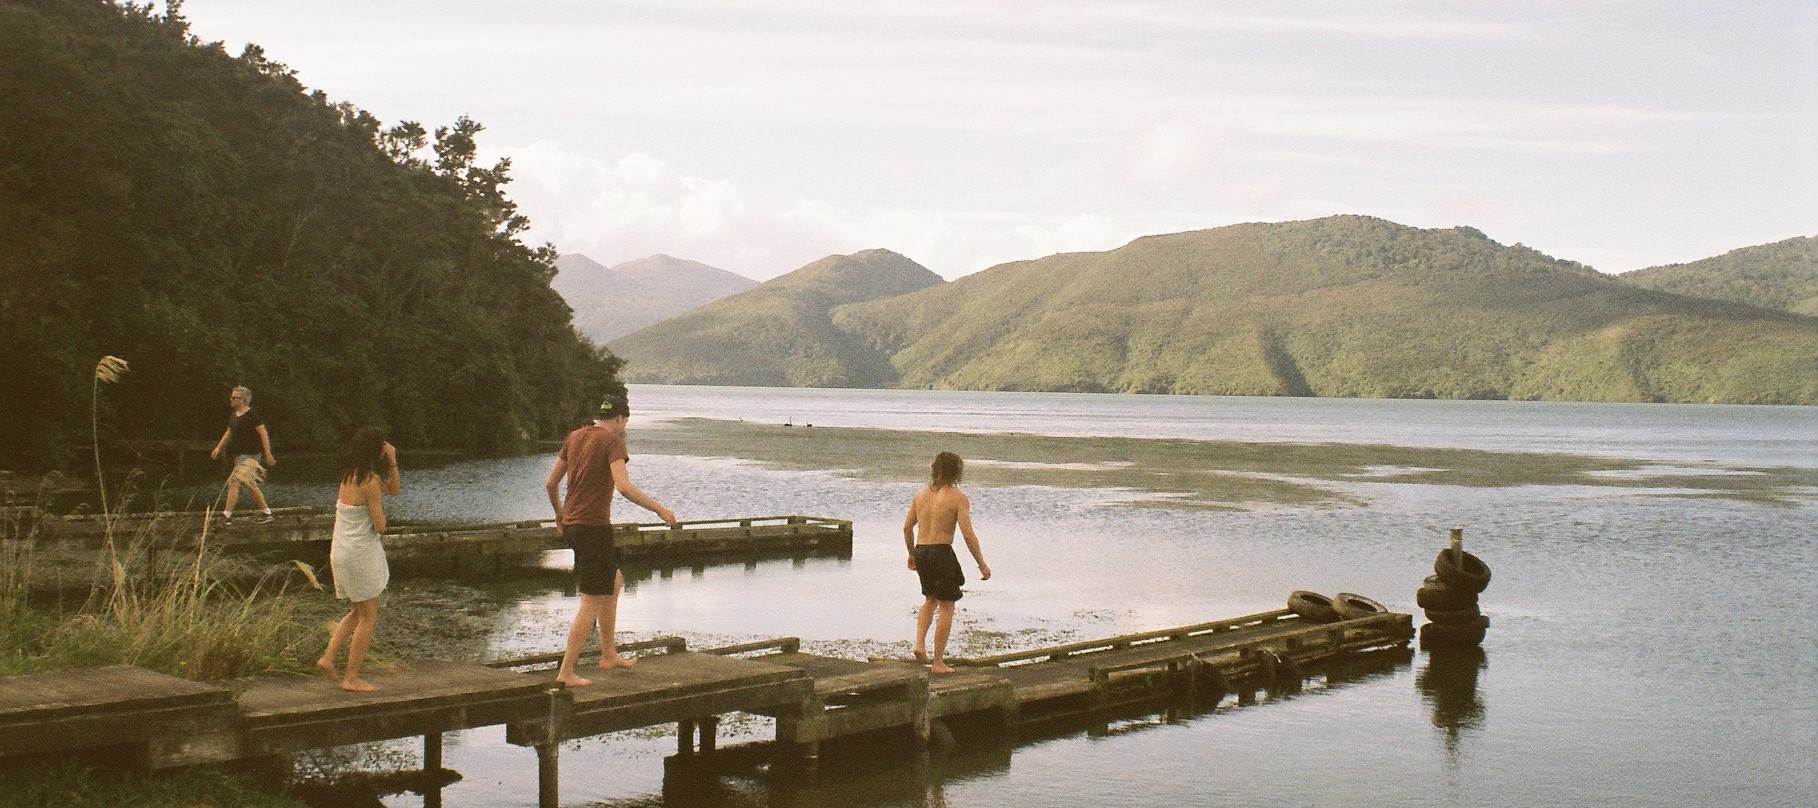 Summers spent by our lakes and rivers are a cherished part of Kiwi lifestyle.